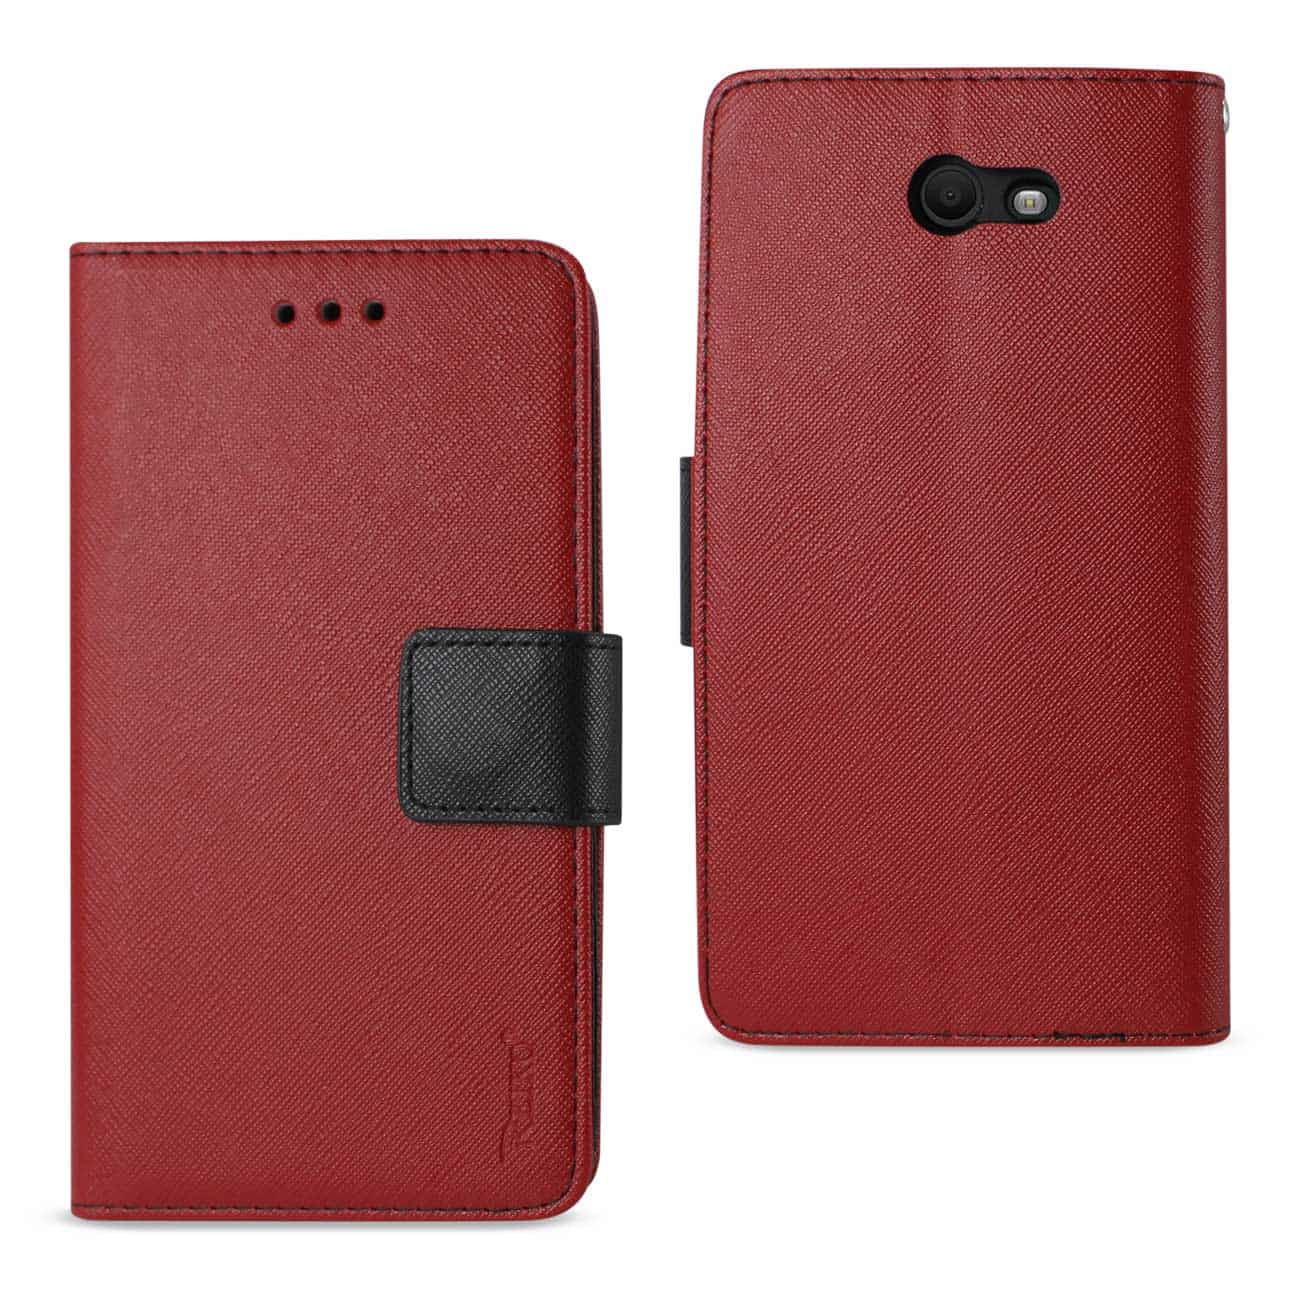 SAMSUNG GALAXY J7 V (2017) 3-IN-1 WALLET CASE IN RED